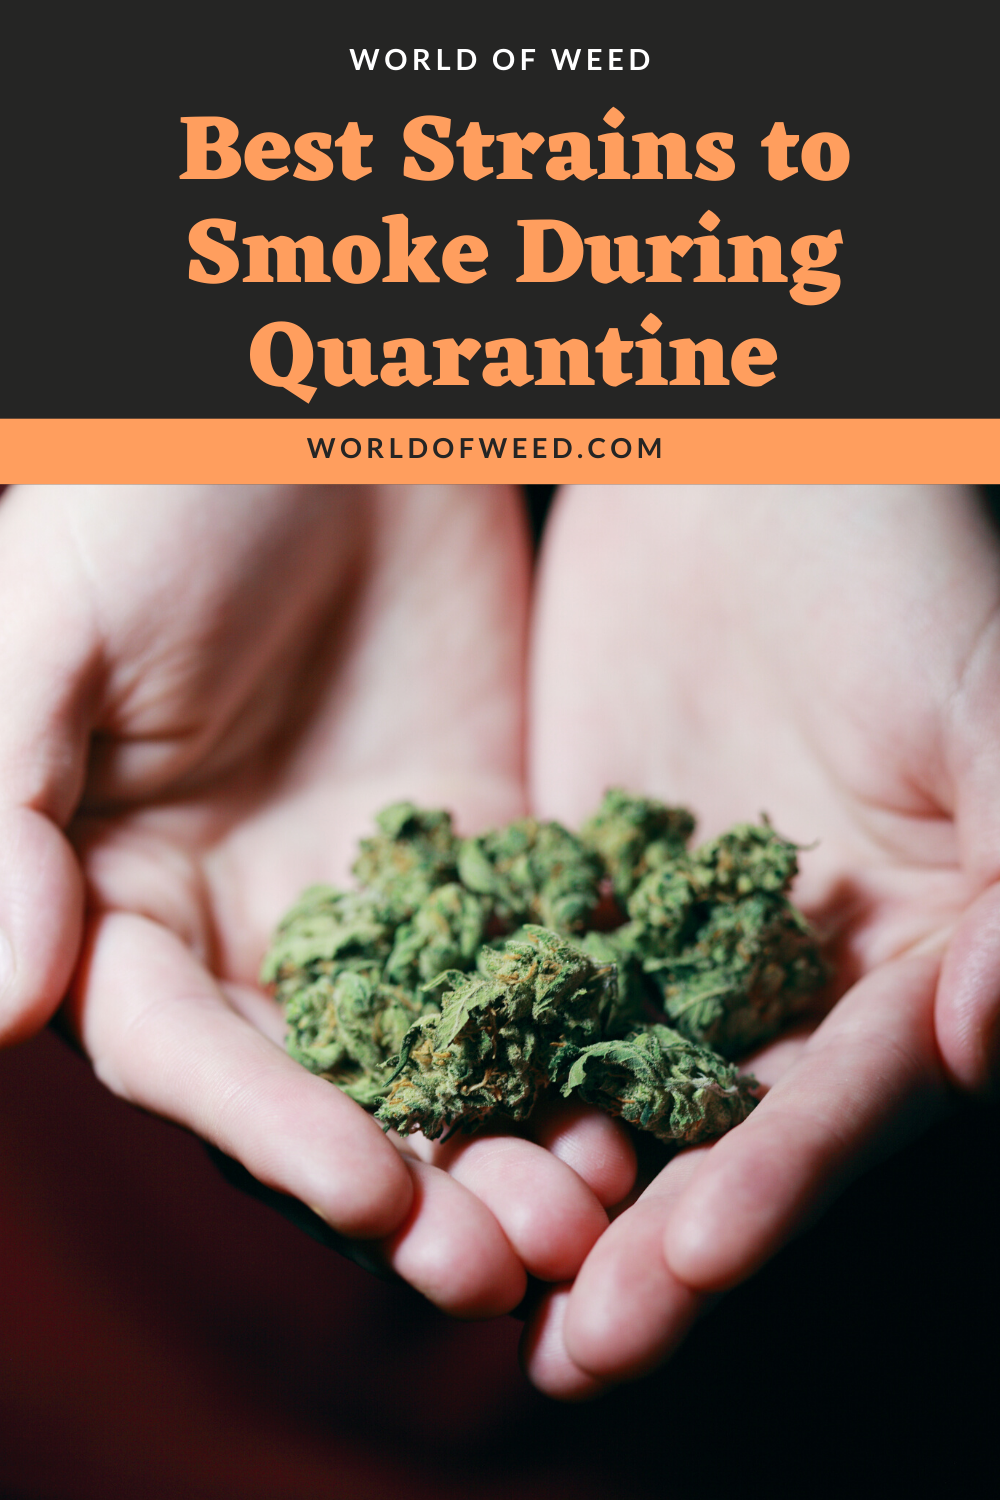 Best Strains to Smoke During Quarantine